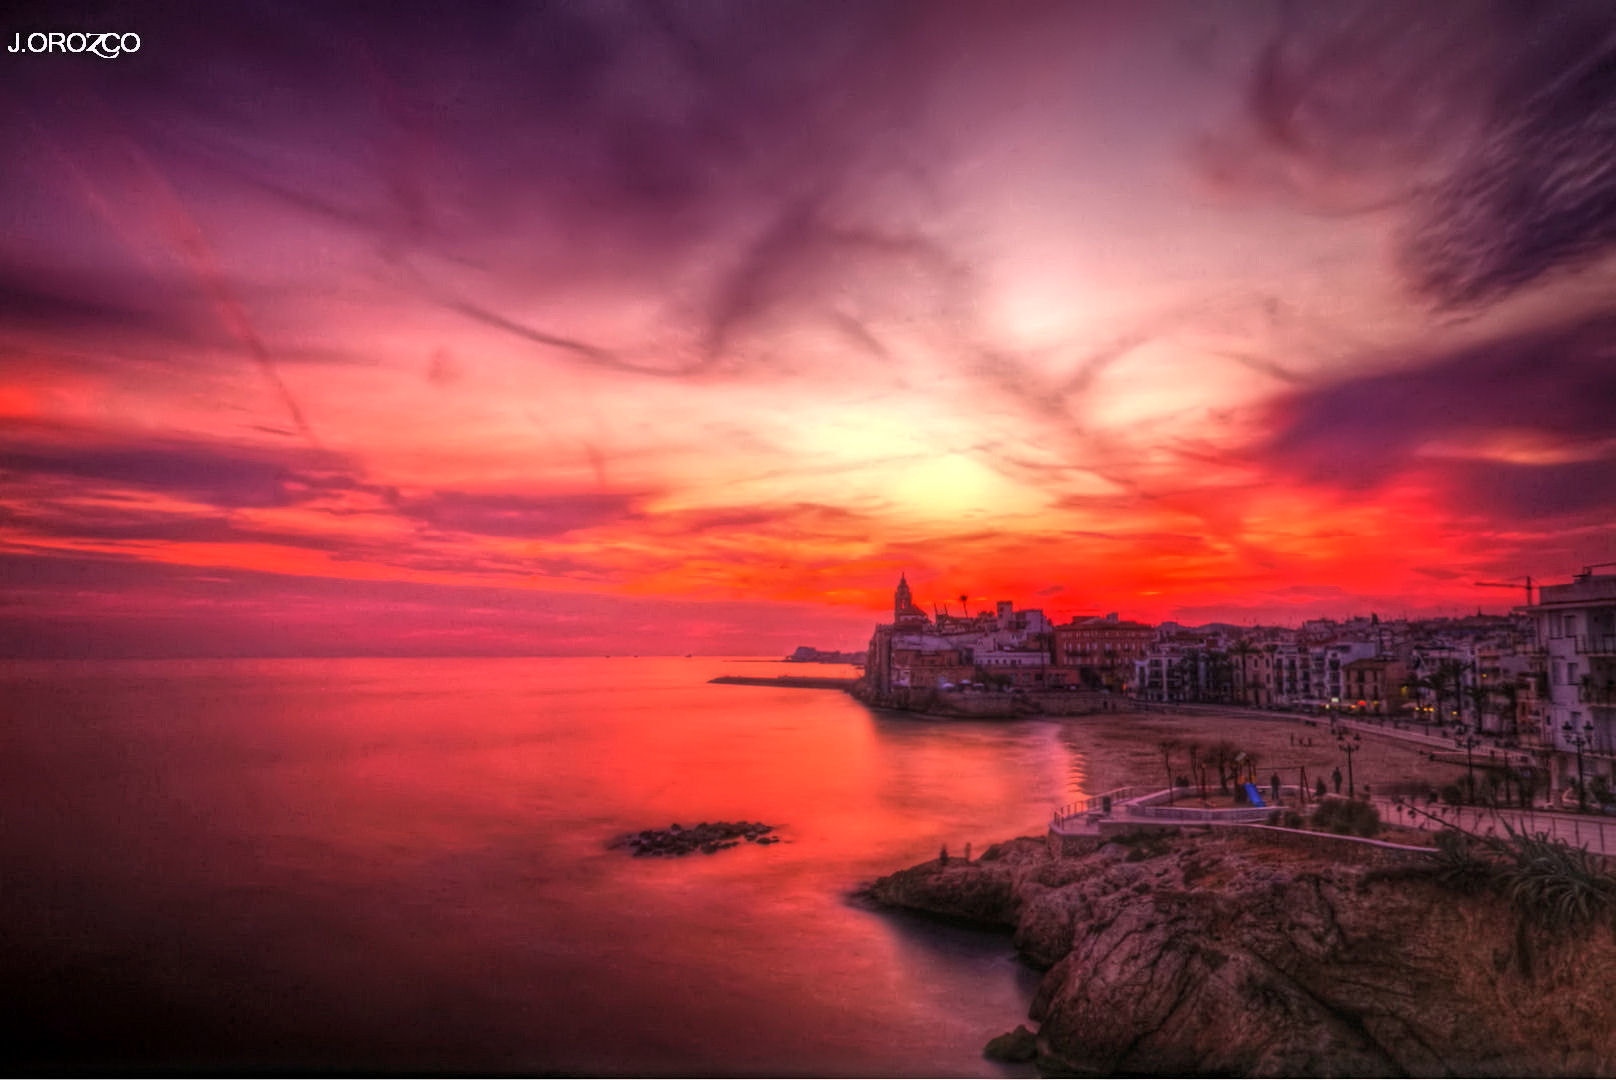 Photograph Atardecer en Sitges. by jose orozco on 500px